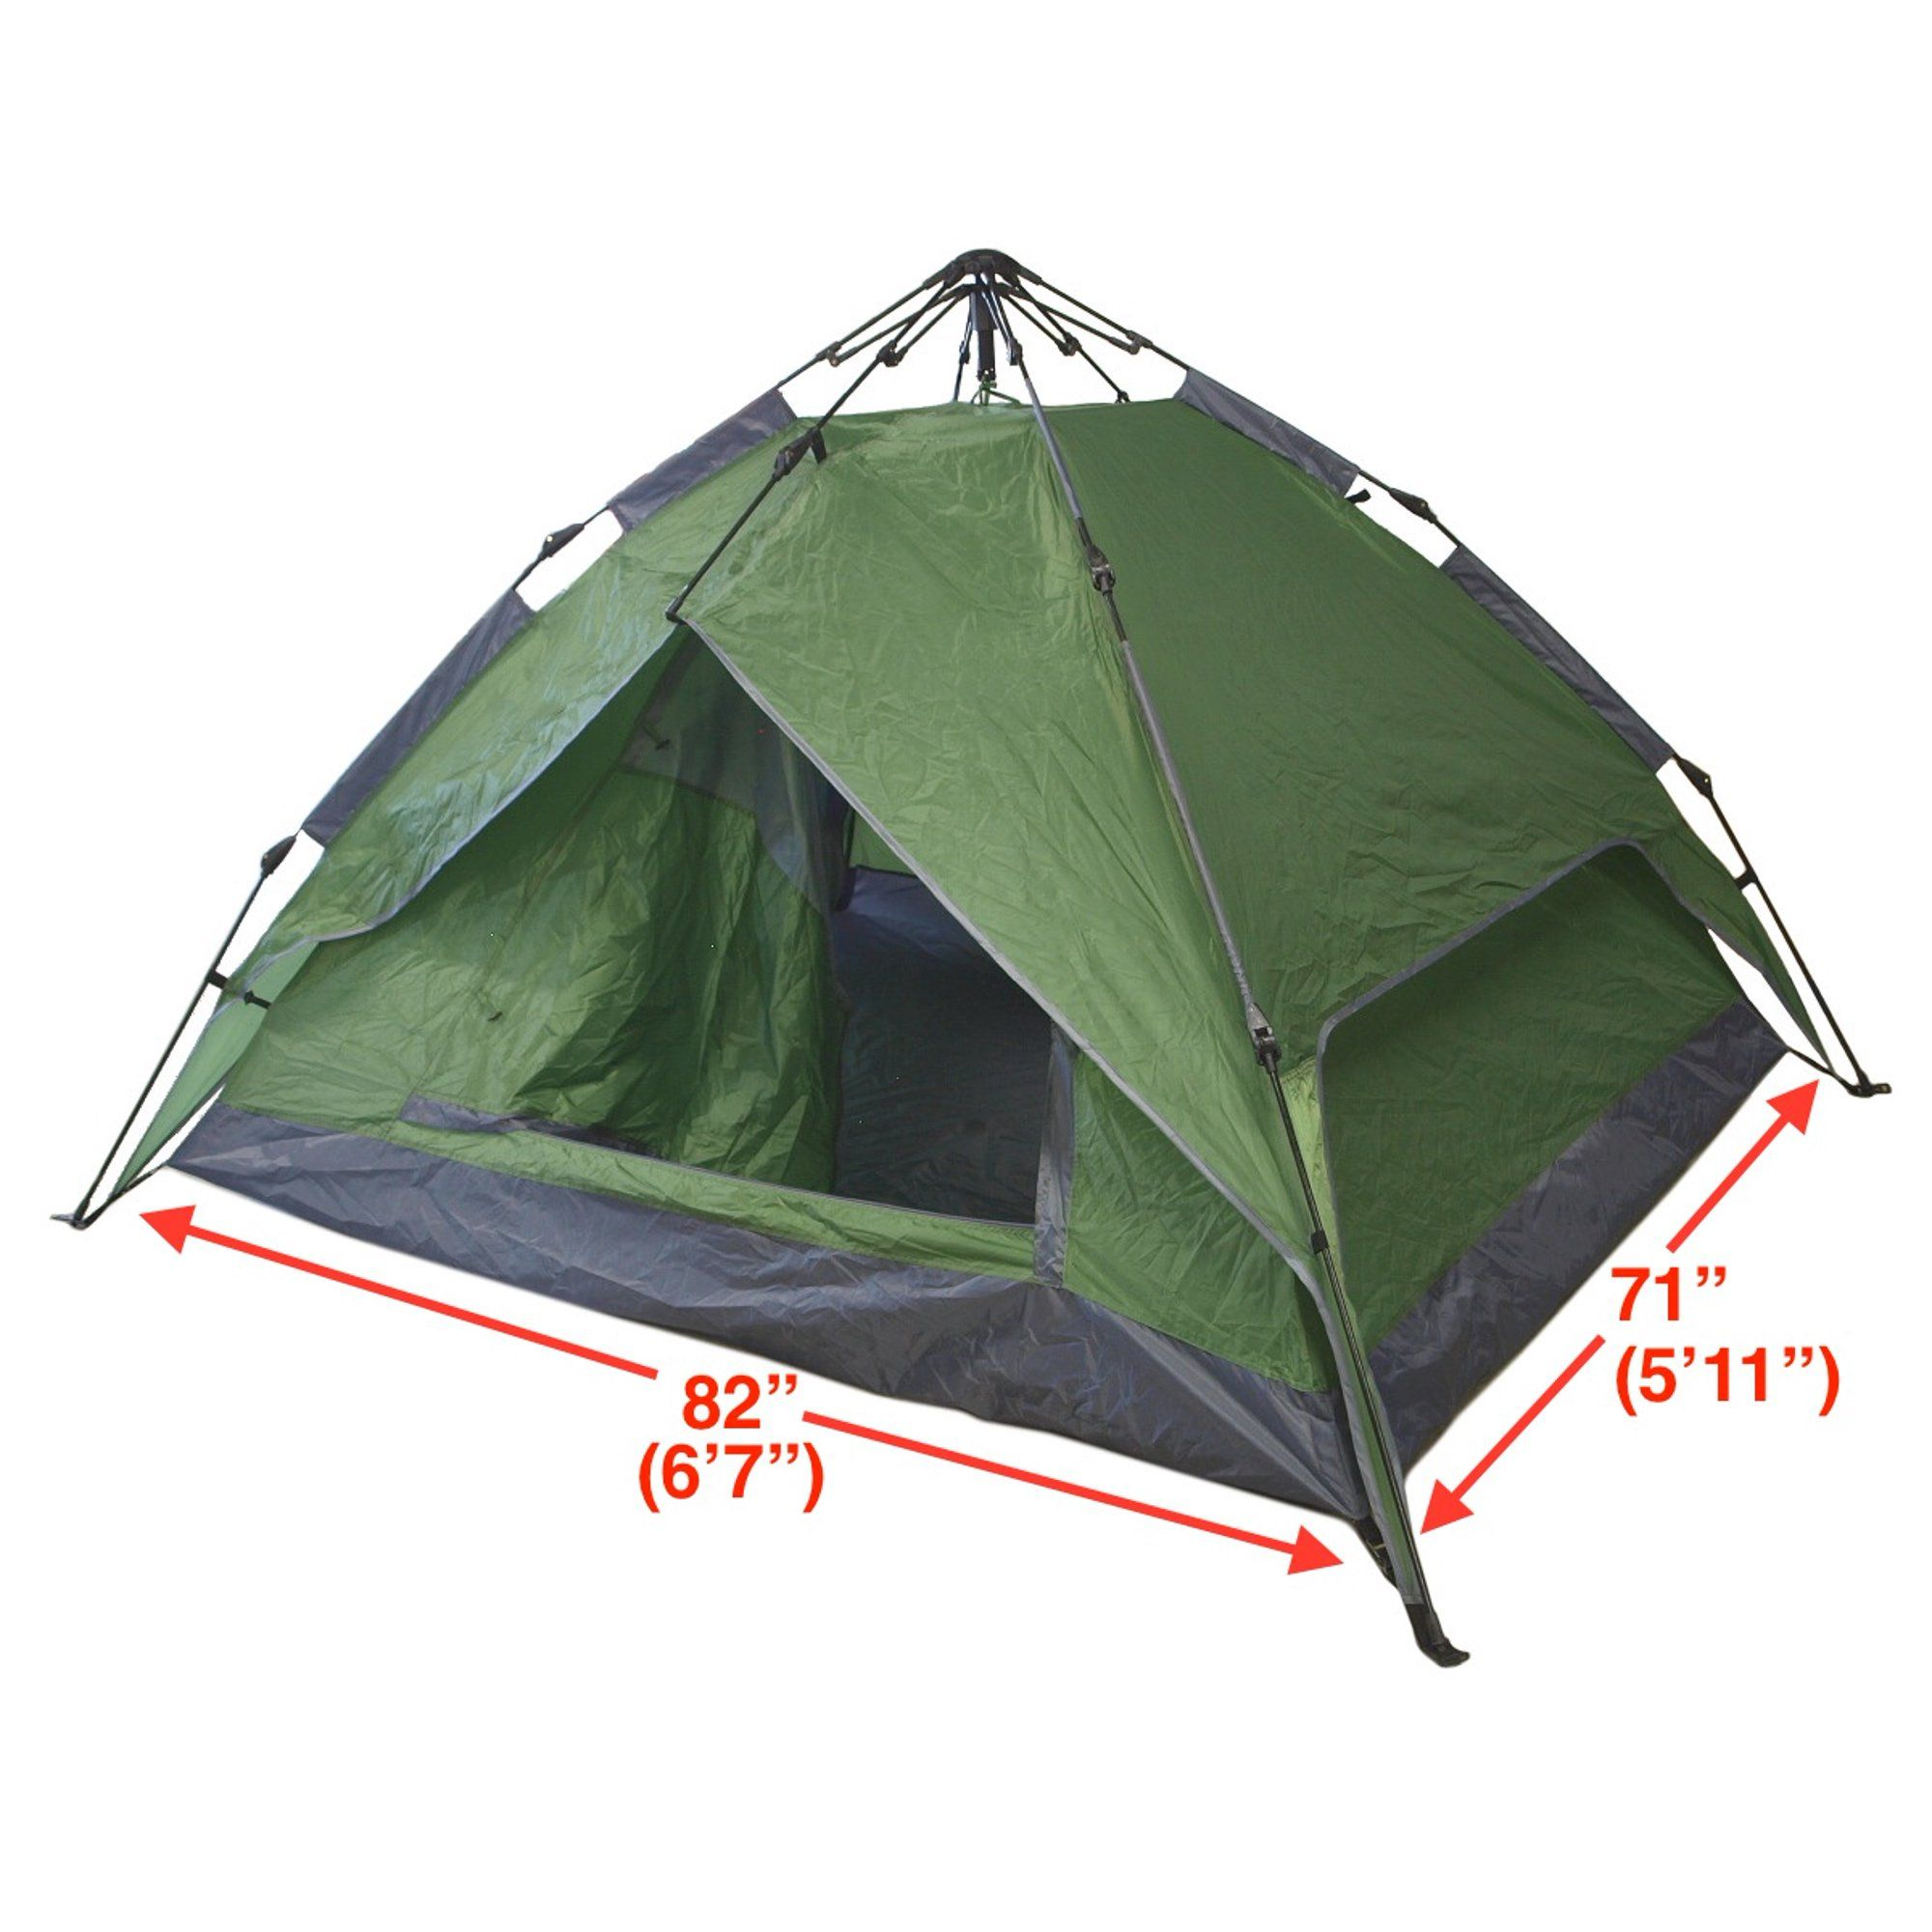 4 Person Instant And Automatic Pop Up Camping Tent Walmart Com In 2021 Pop Up Camping Tent 4 Man Tent Instant Tent